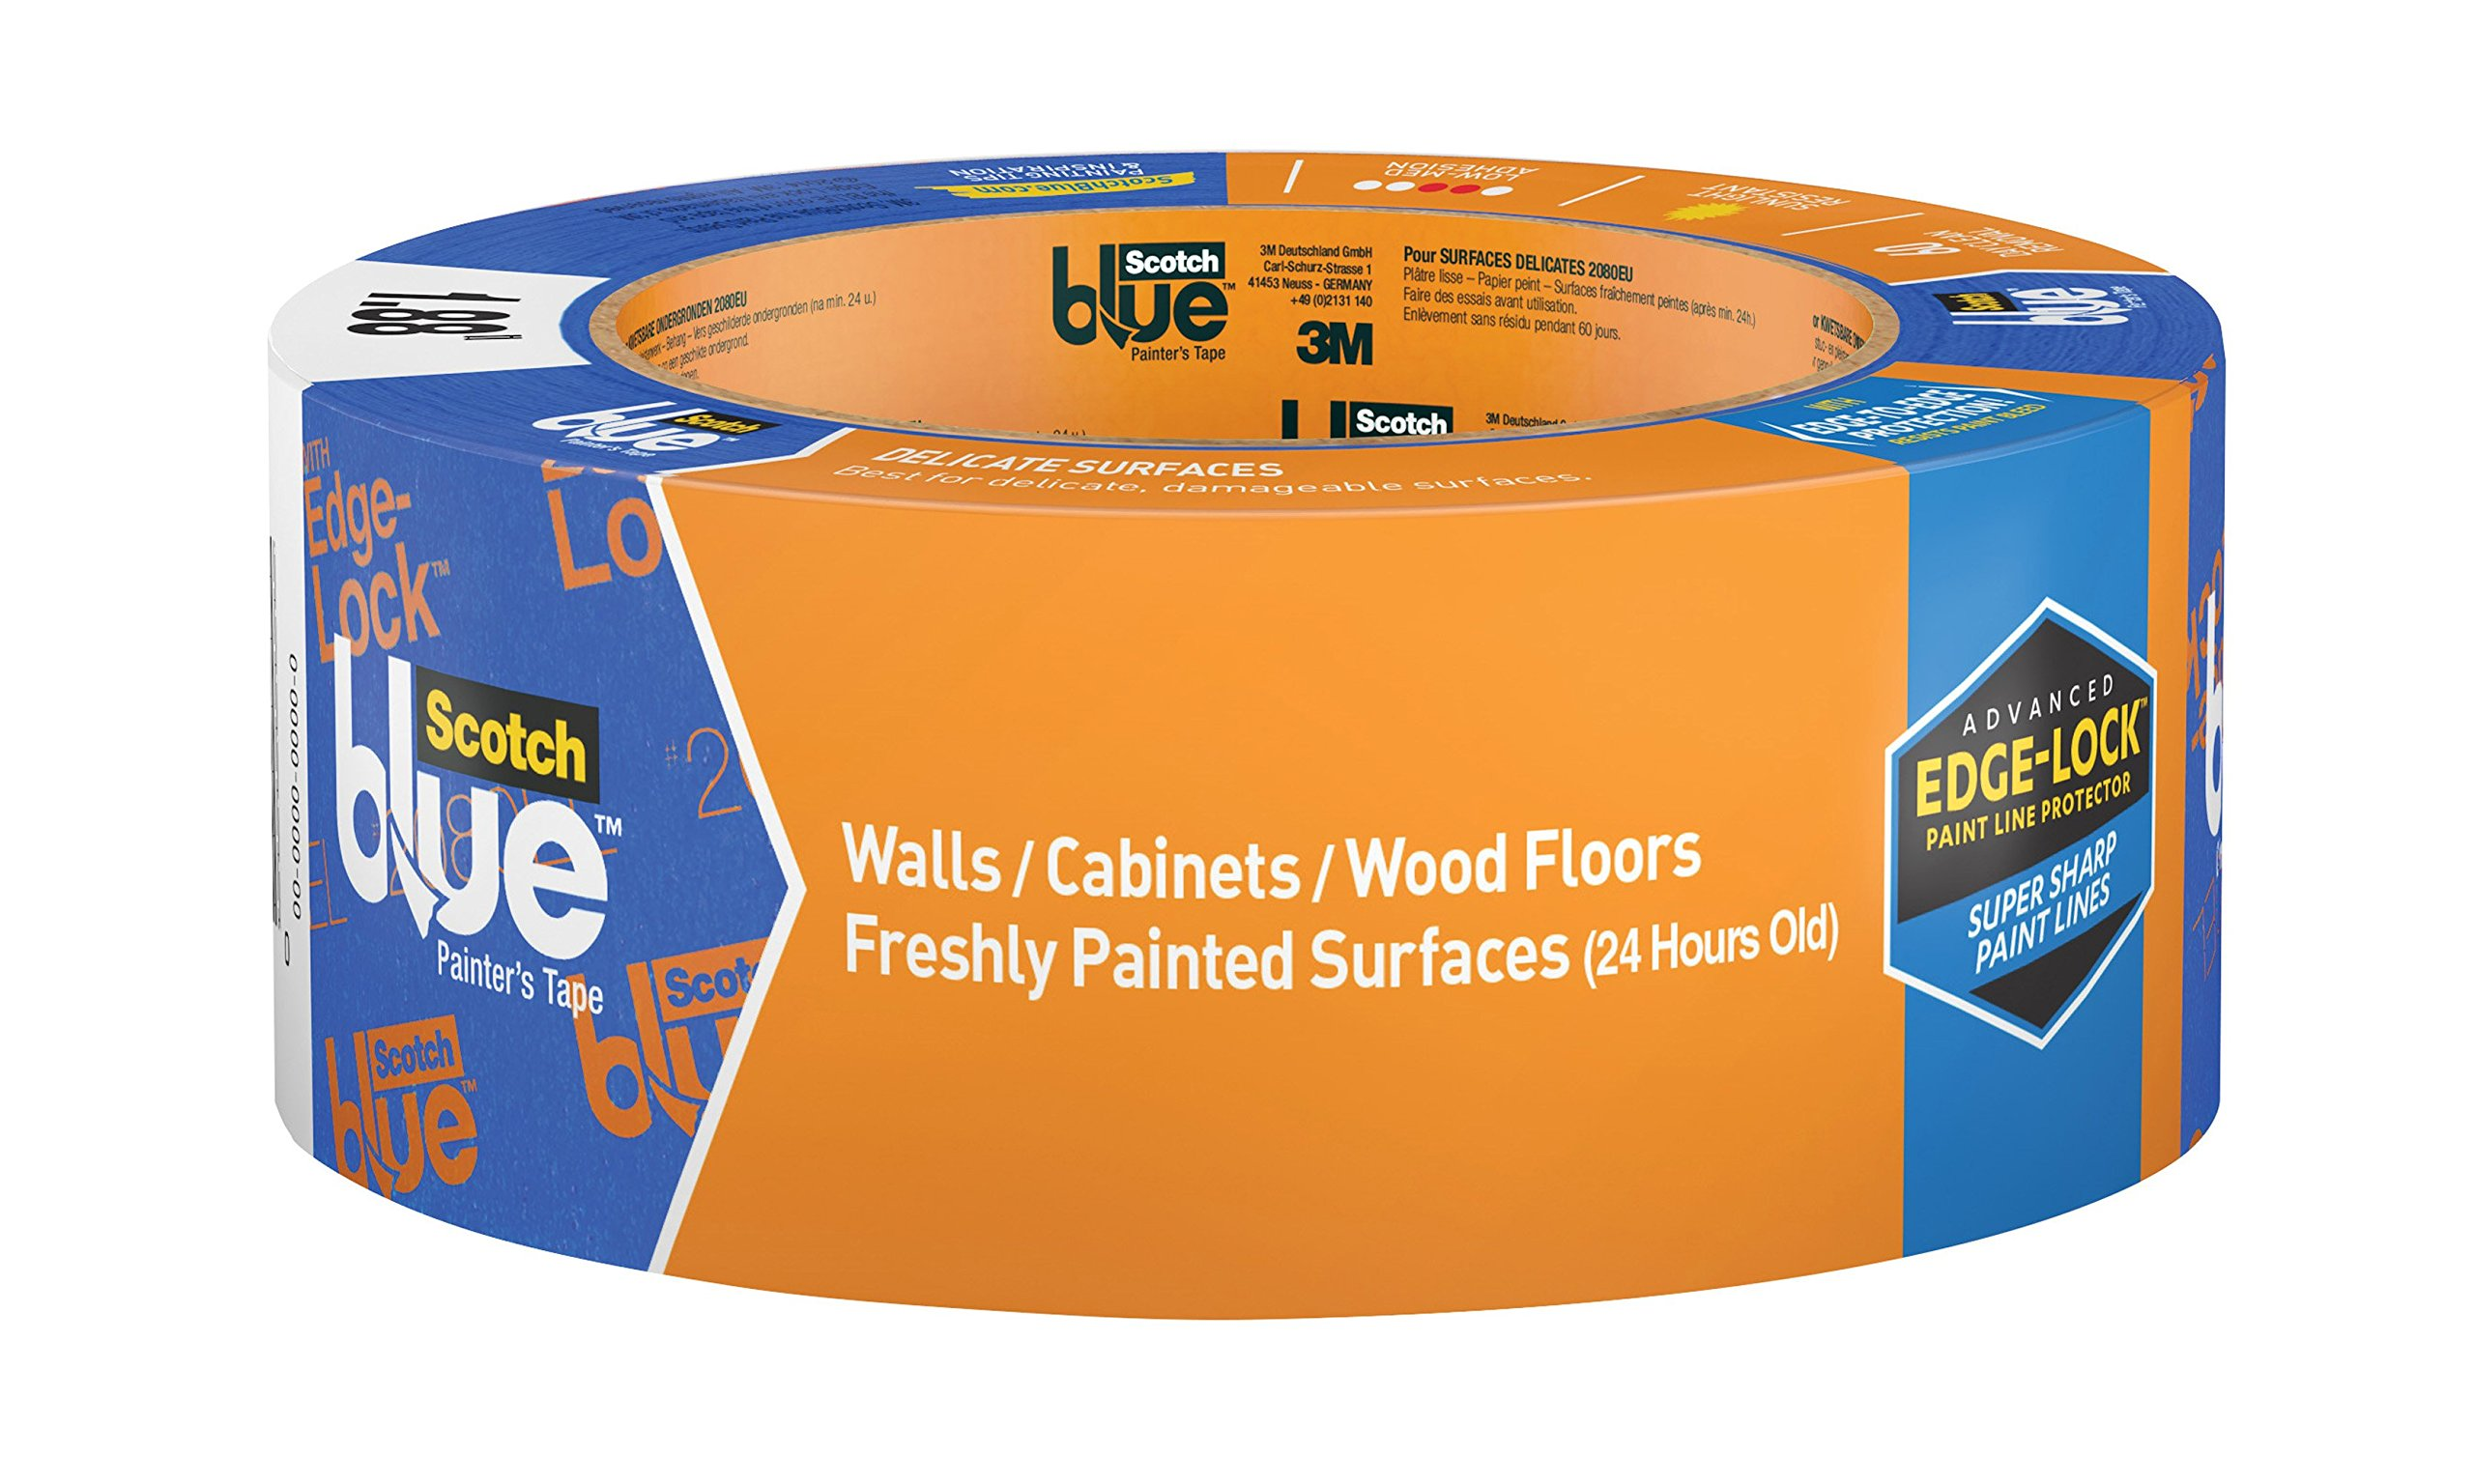 ScotchBlue WALLS + WOOD FLOORS Painter's Tape, 1.88-Inch x 60-Yards, 12 Rolls